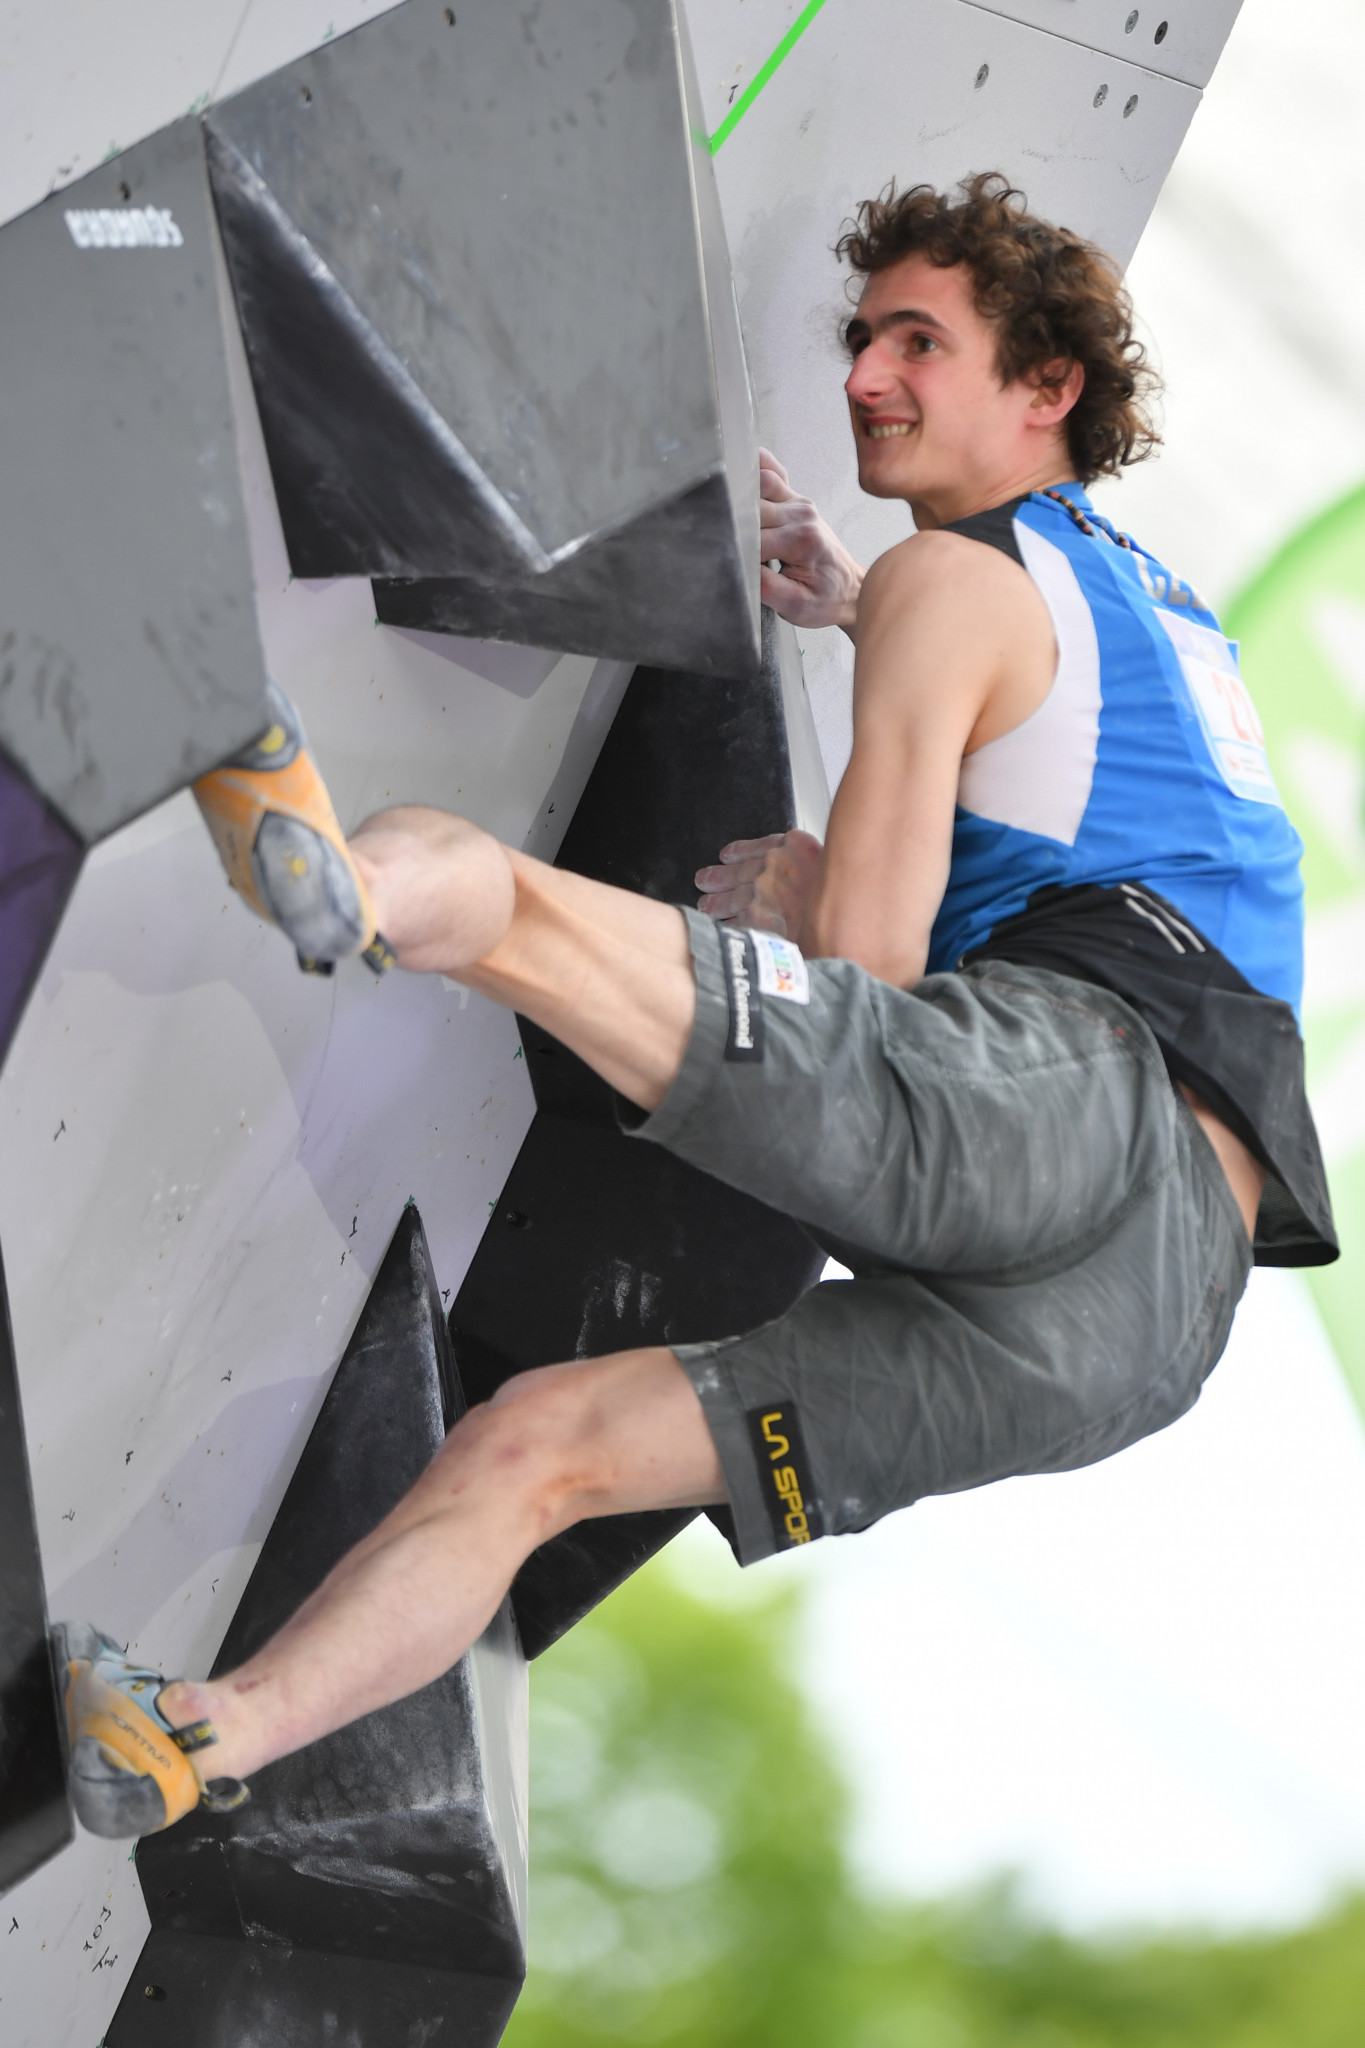 Ondra and Garnbret take men's and women's lead titles at IFSC Climbing World Championships